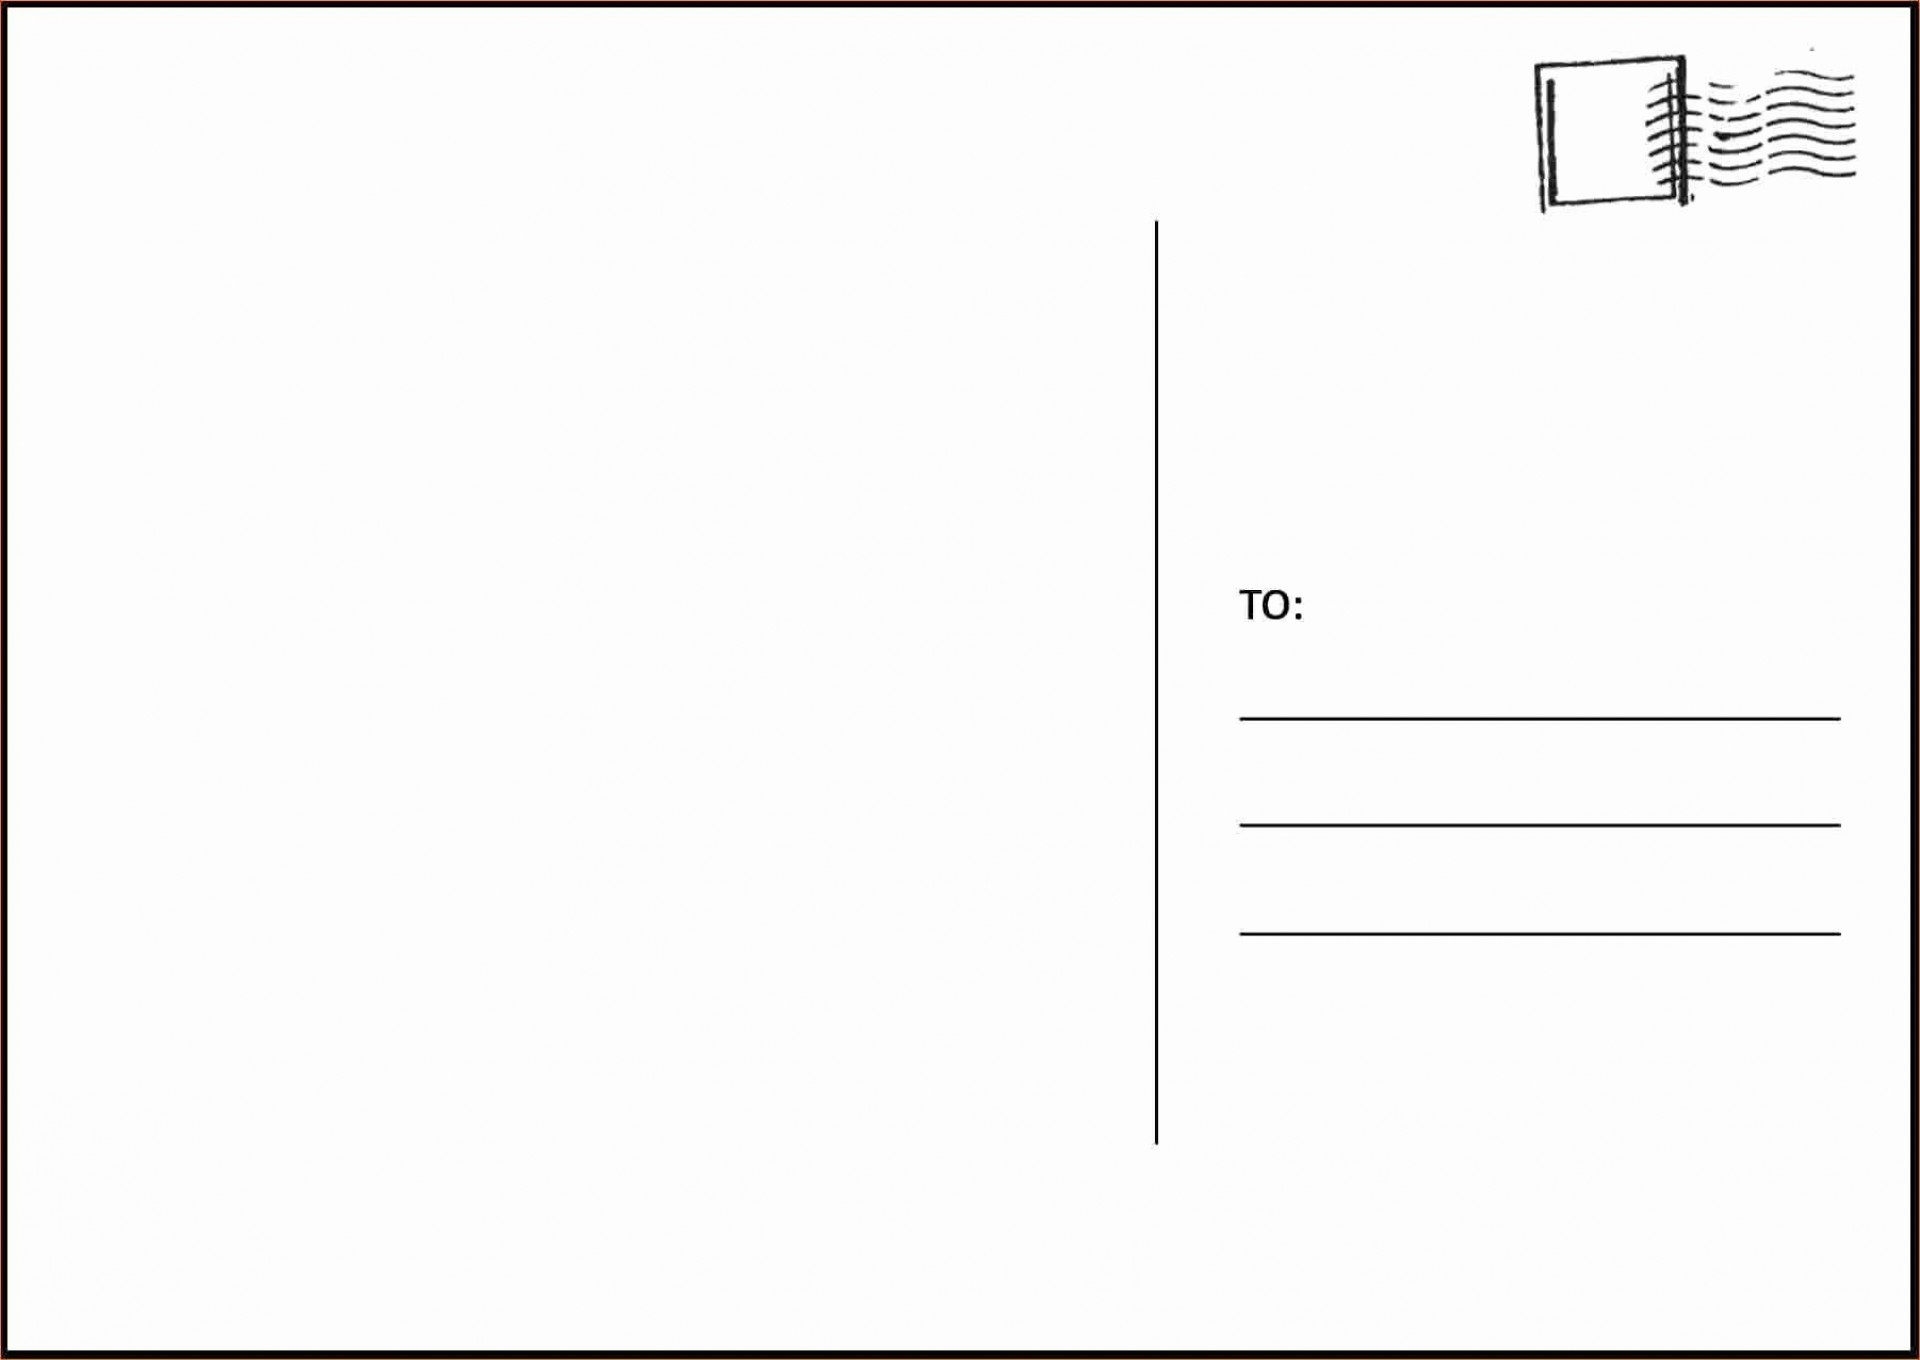 000 Awesome Postcard Template Download Microsoft Word Sample 1920